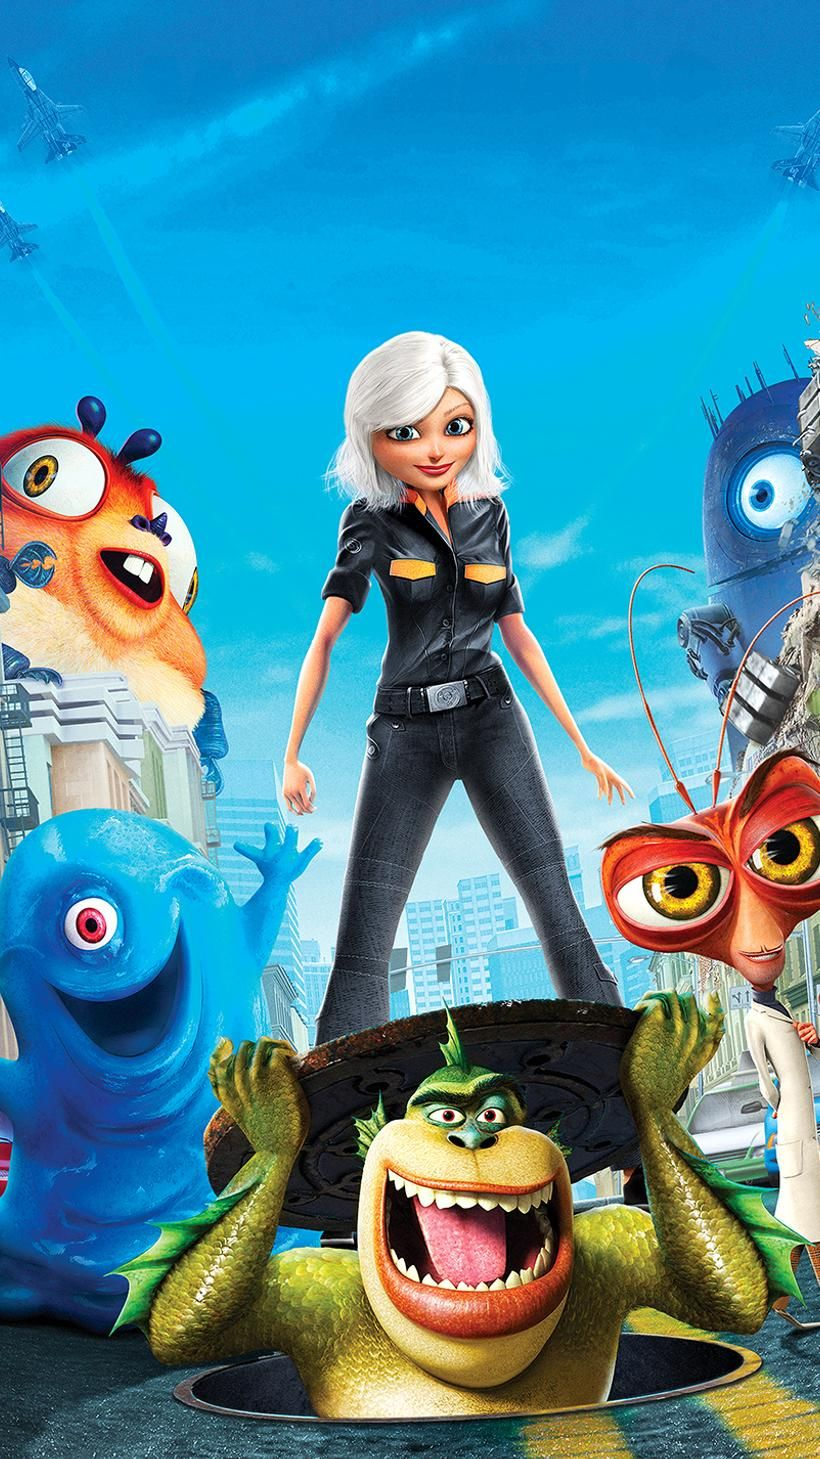 monsters vs aliens full movie genvideos